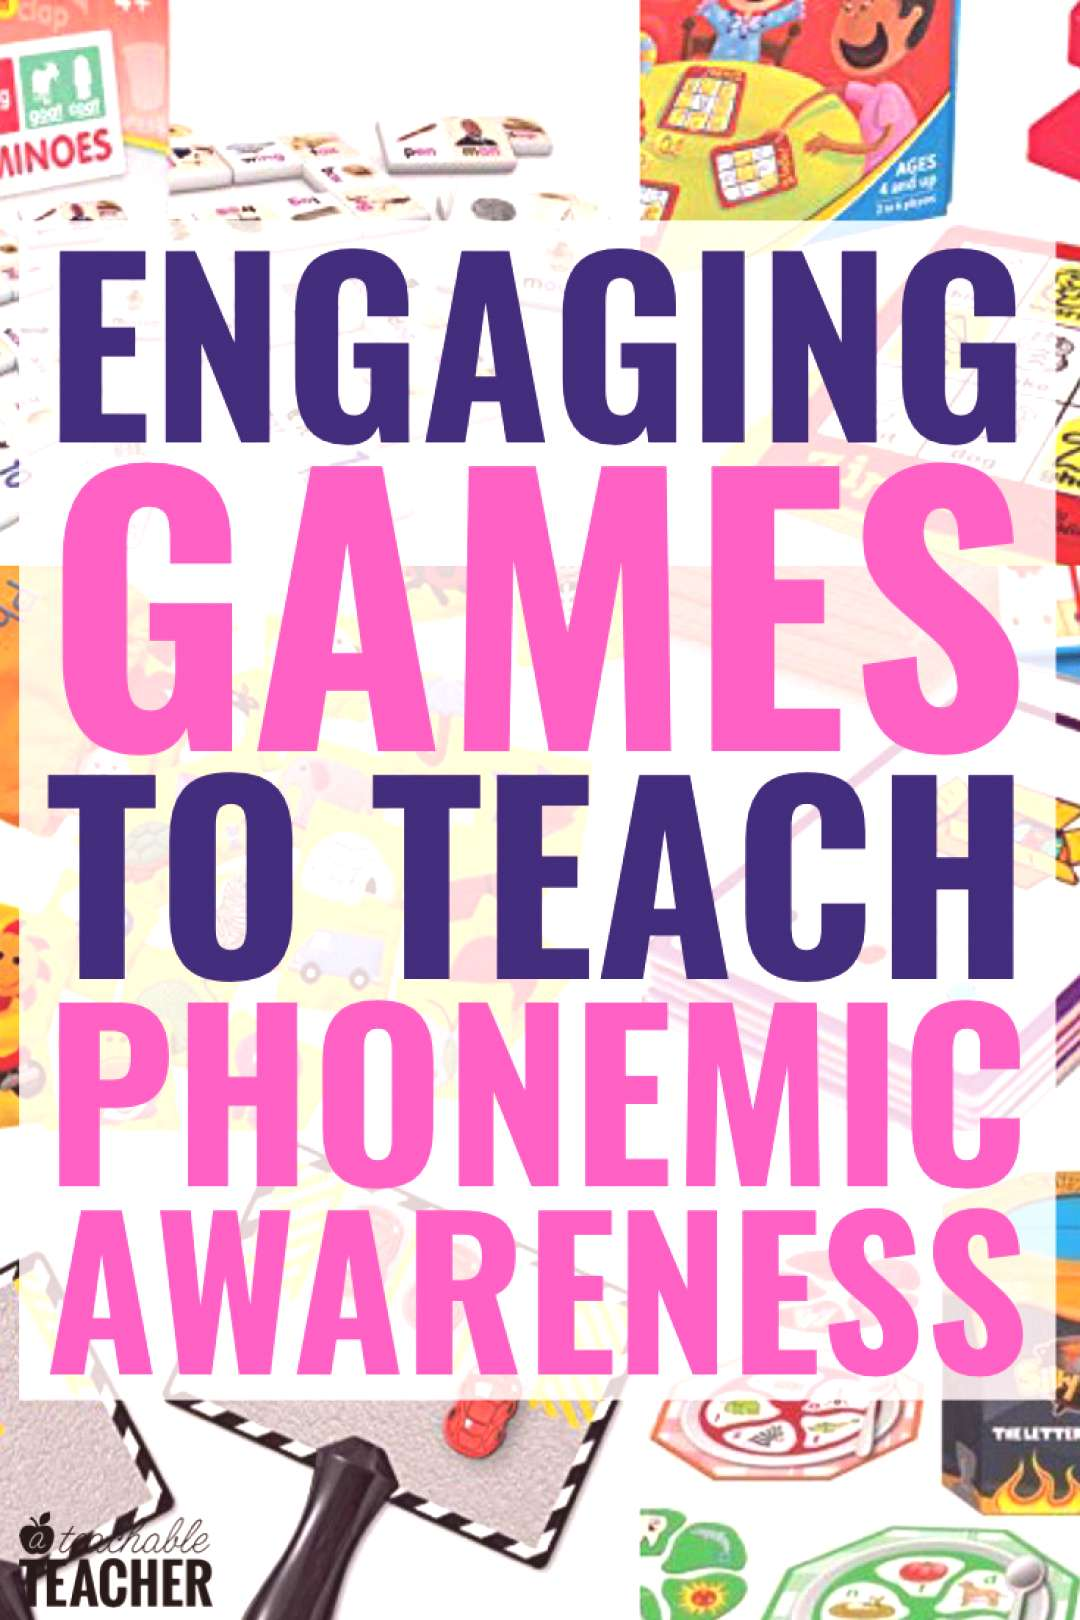 These engaging games are perfect for practicing phonemic awareness skils with new readers. They get